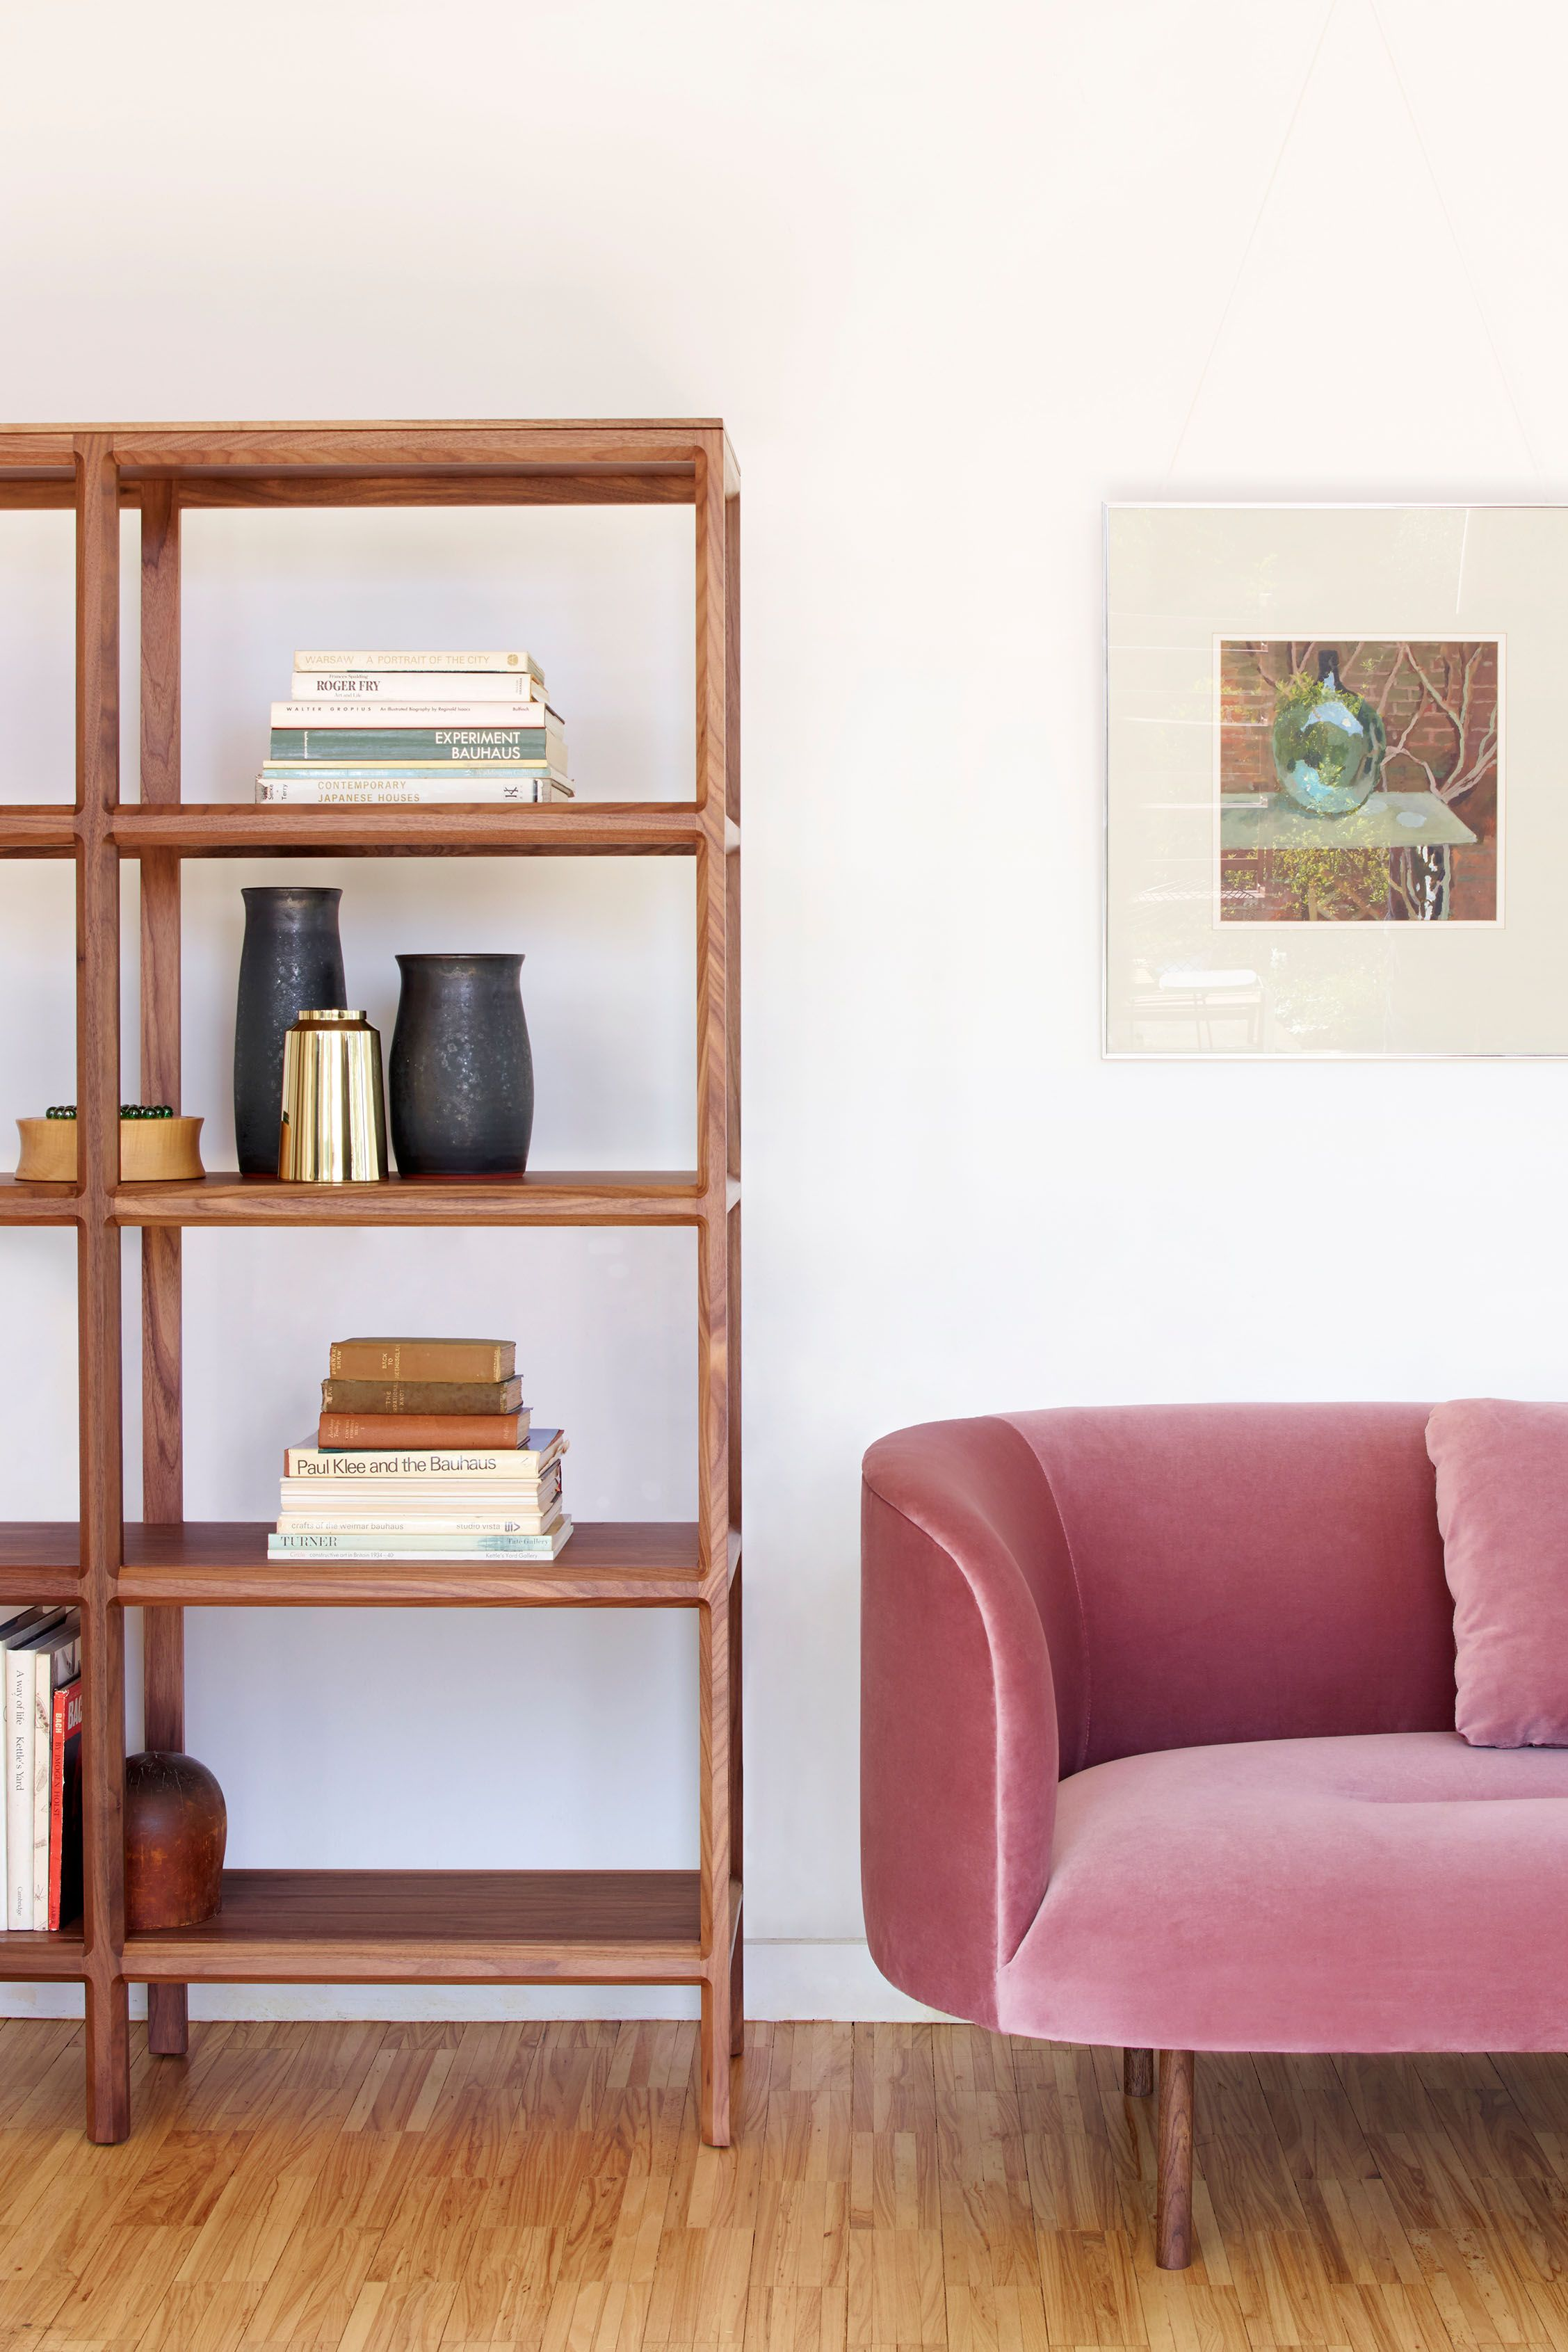 Continuous sofa by Faudet Harrison and Trieste shelving unit by